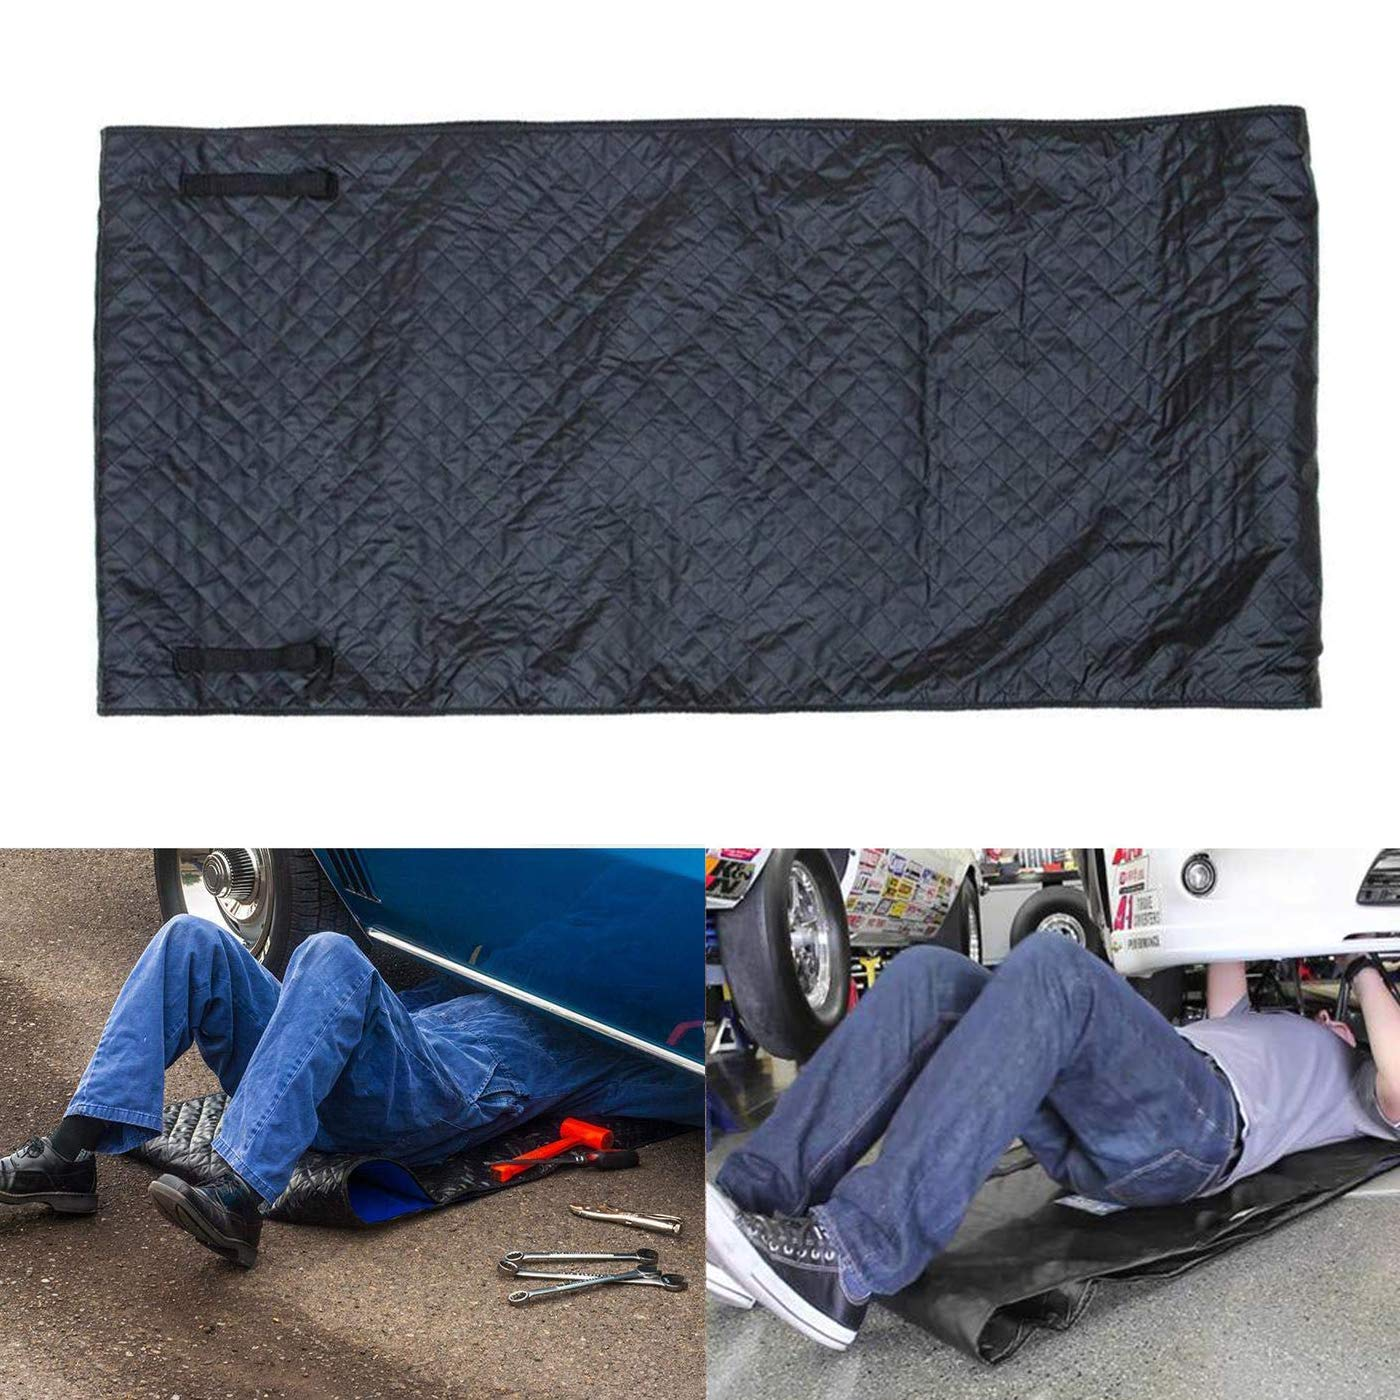 OHMU Automotive Car Creeper, Zero Ground Auto Mechanics Repair Creepers Mat Rolling Pad Under The Vehicle for Cars Working and Household (Black)